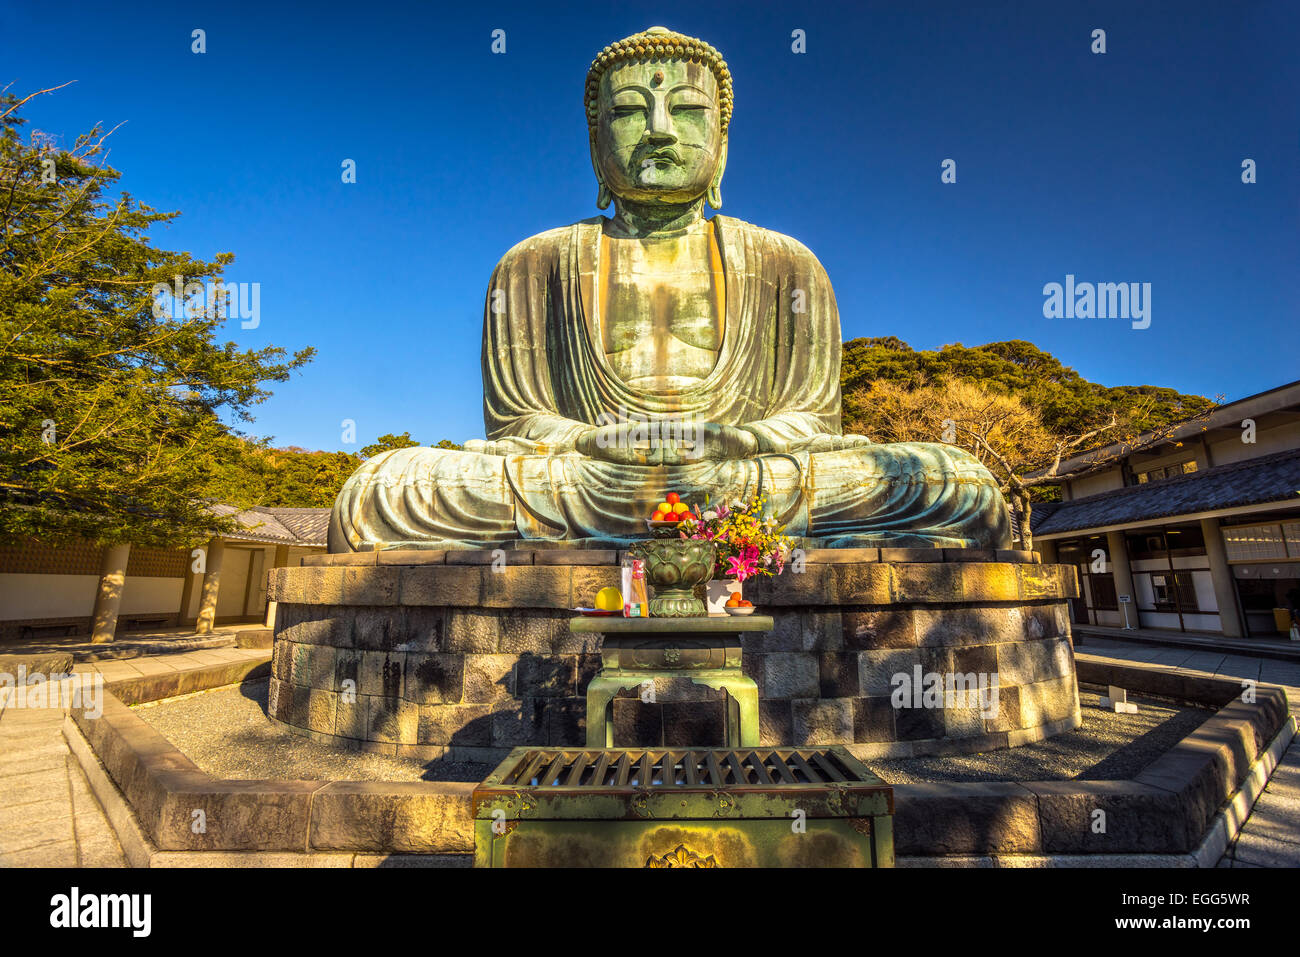 The Great Buddha (Daibutsu) on the grounds of Kotokuin Temple in ...